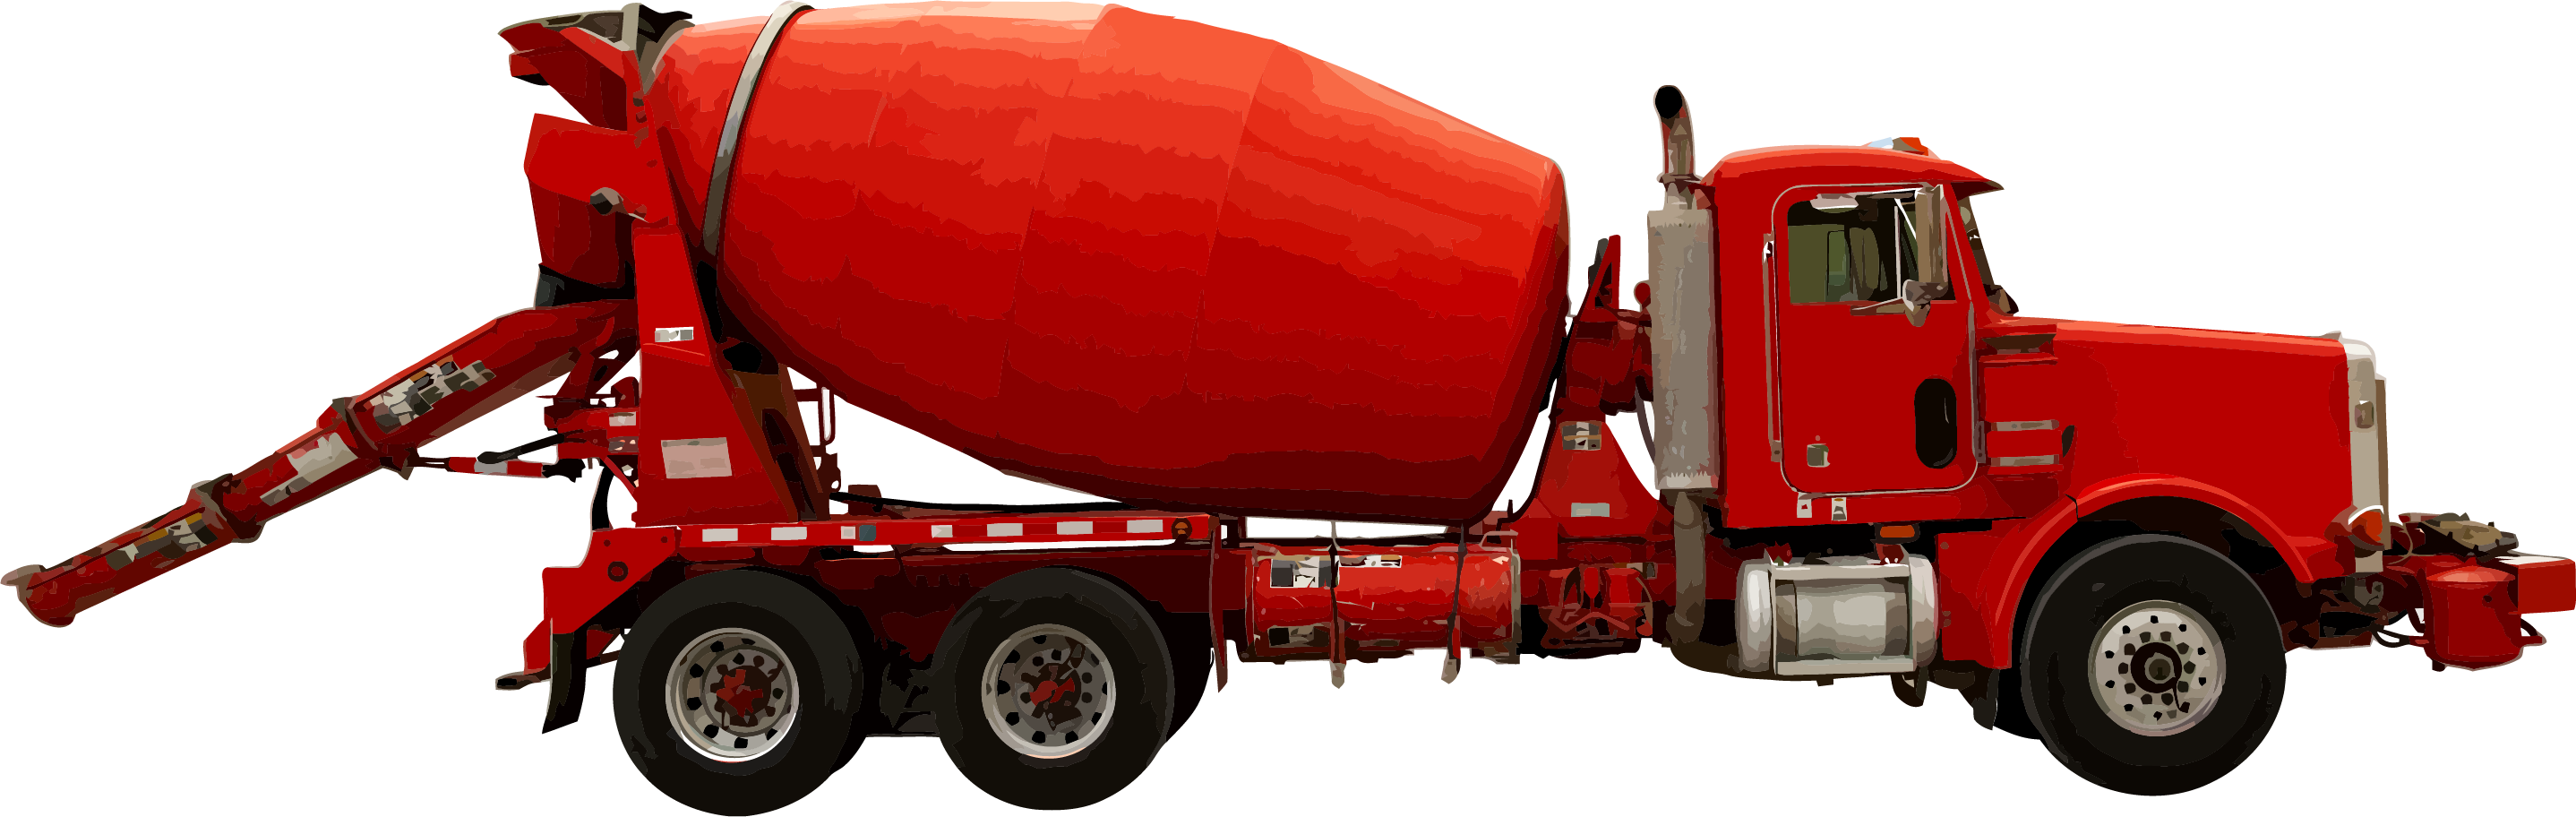 Concrete truck png. Cement mixers heavy machinery